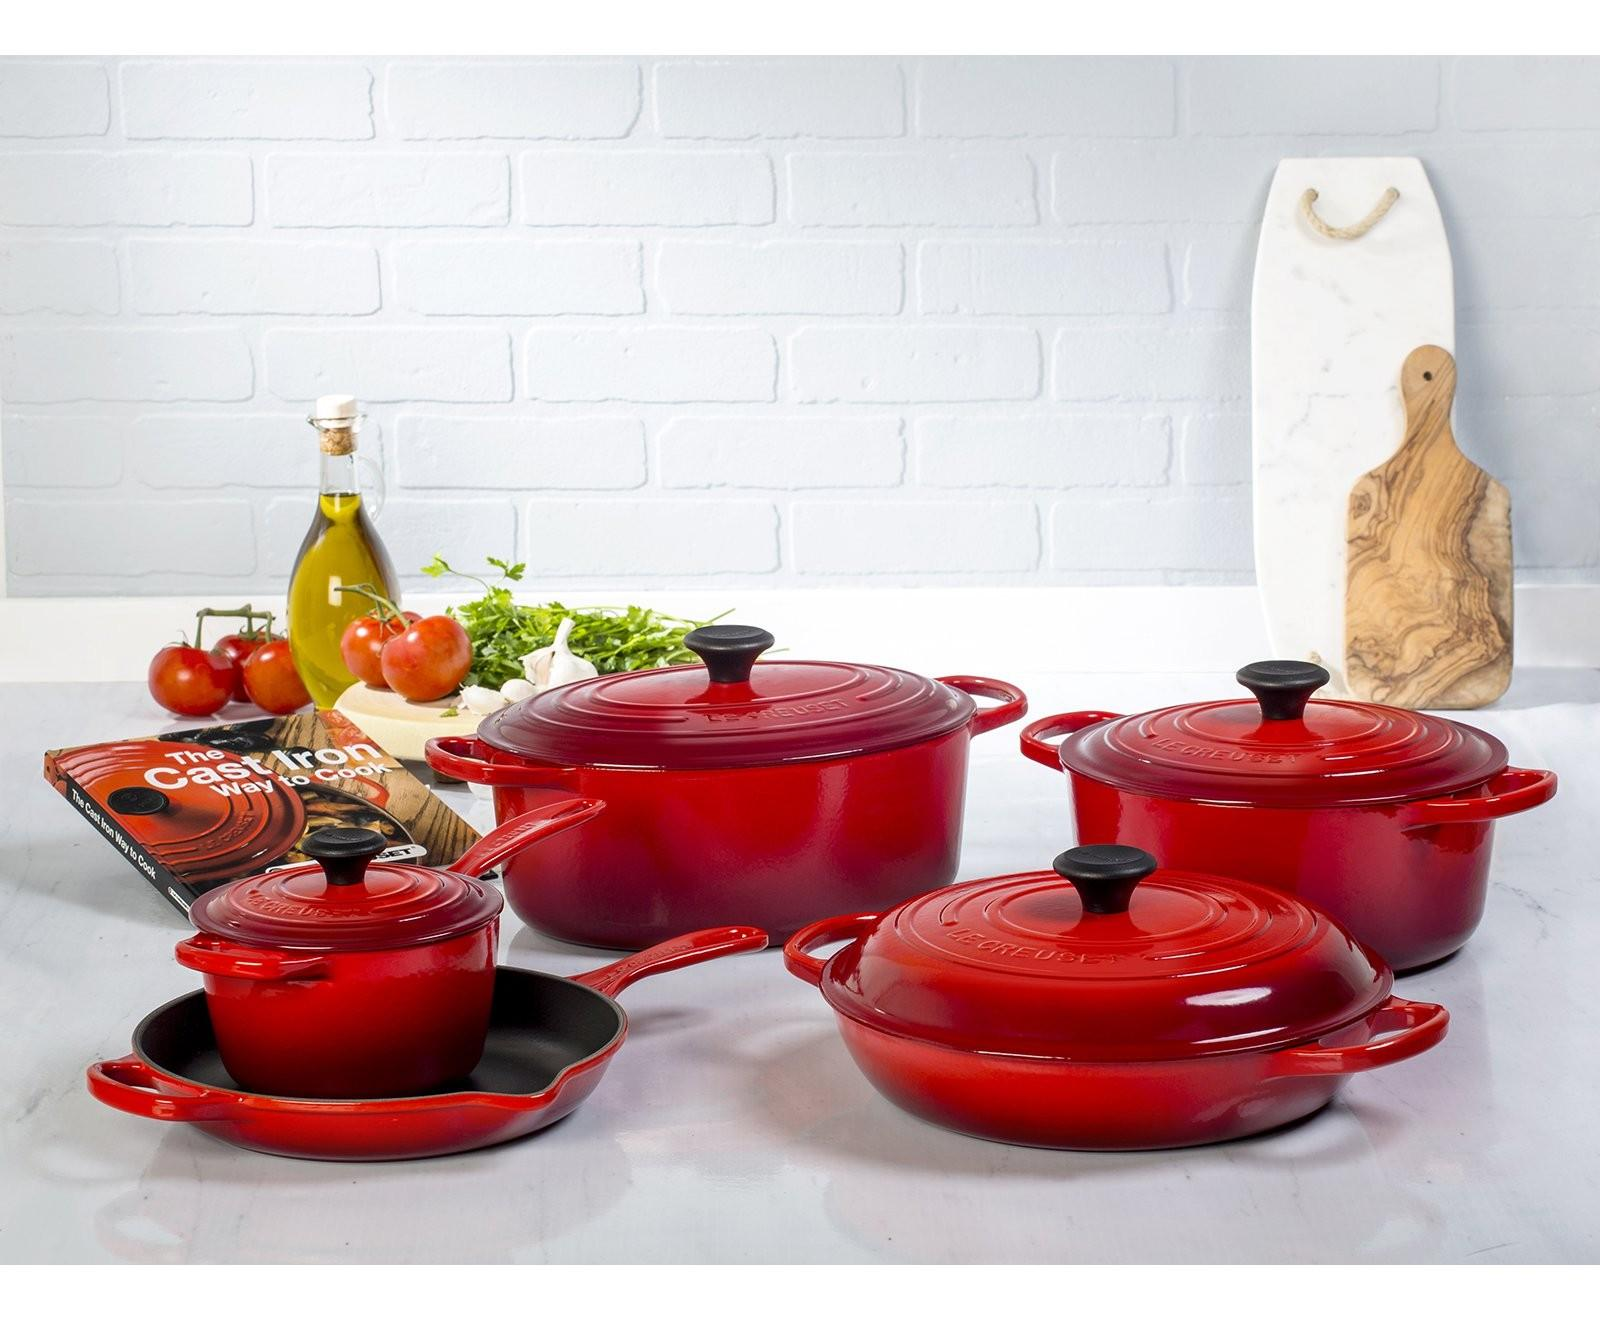 Get a Free Petite Flower CocotteULTIMATE CAST IRON SET Sale @ Le Creuset